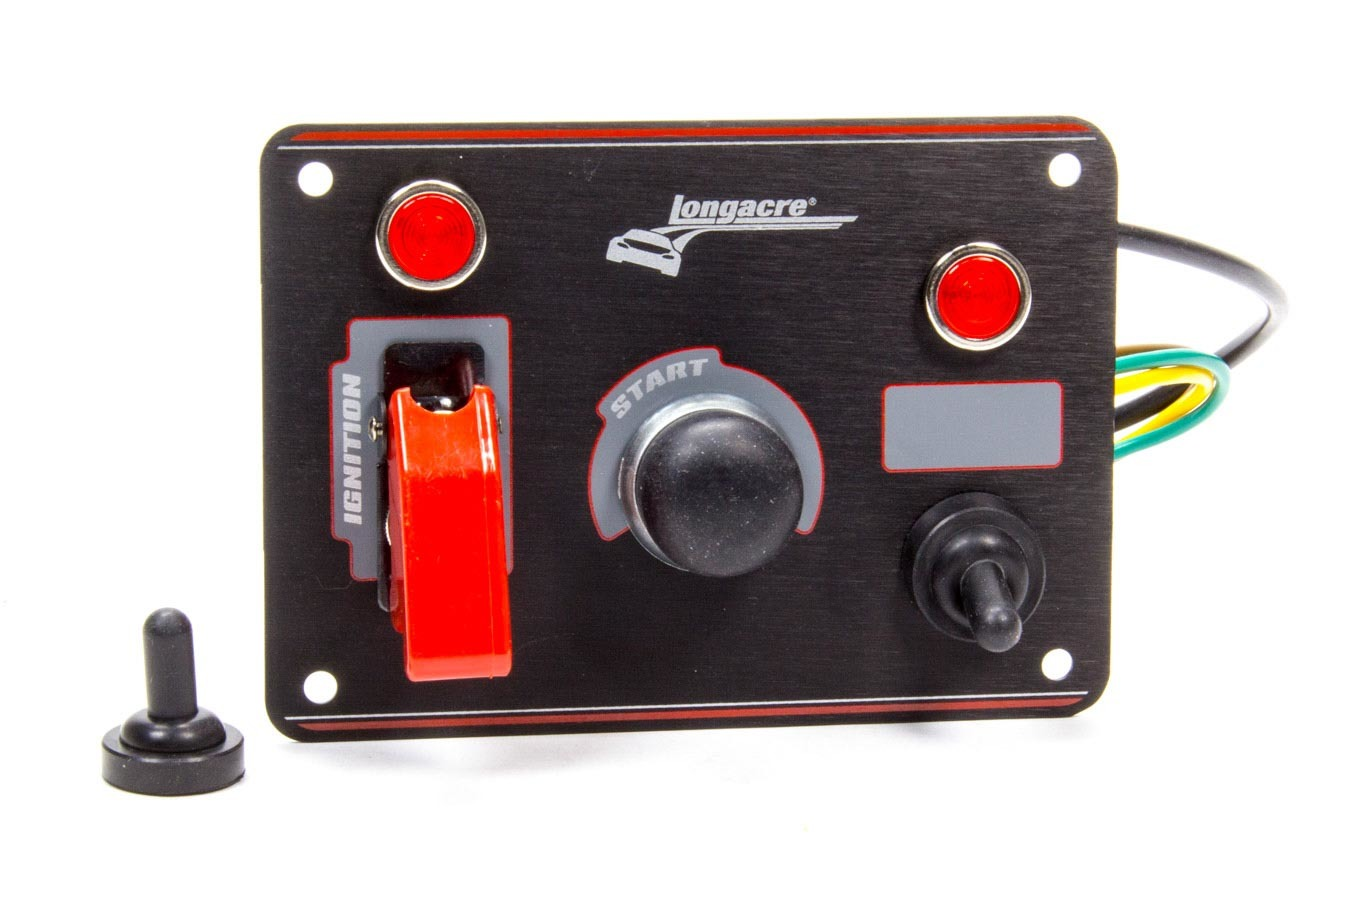 Longacre 52-44866 Switch Panel, Dash Mount, 3-3/8 x 3-5/8 in, 1 Safety Cover Toggle / 1 Toggle / 1 Momentary Button, Indicator Lights, Black Anodized, Each